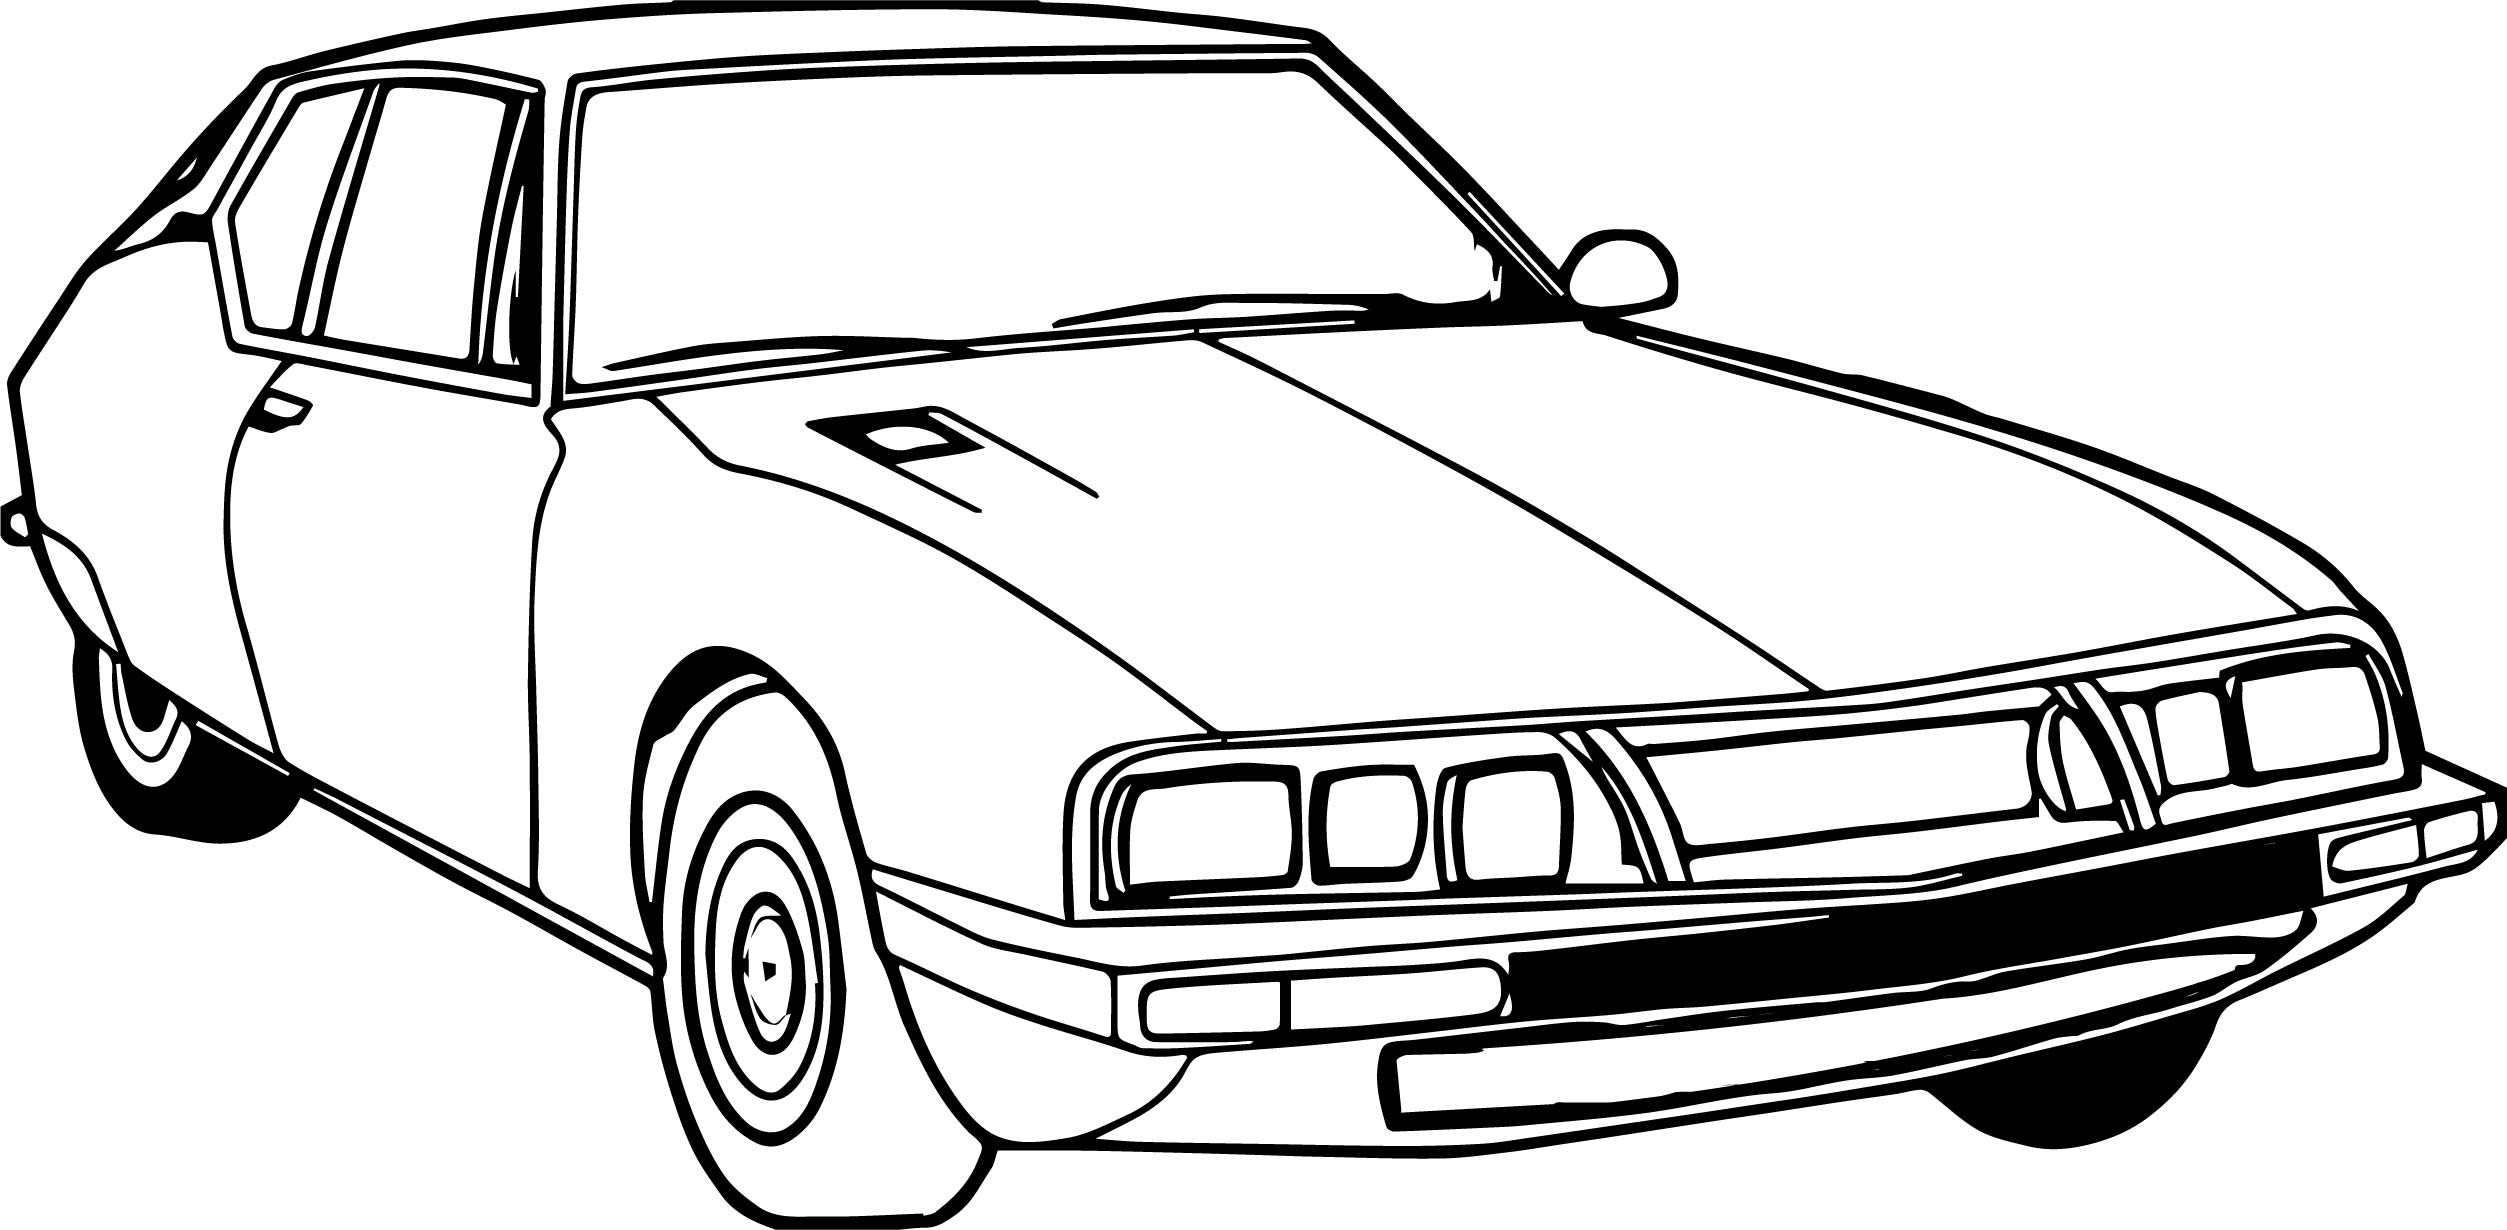 coloring pages antique cars | Vintage Antique Small Car Coloring Page | Wecoloringpage.com